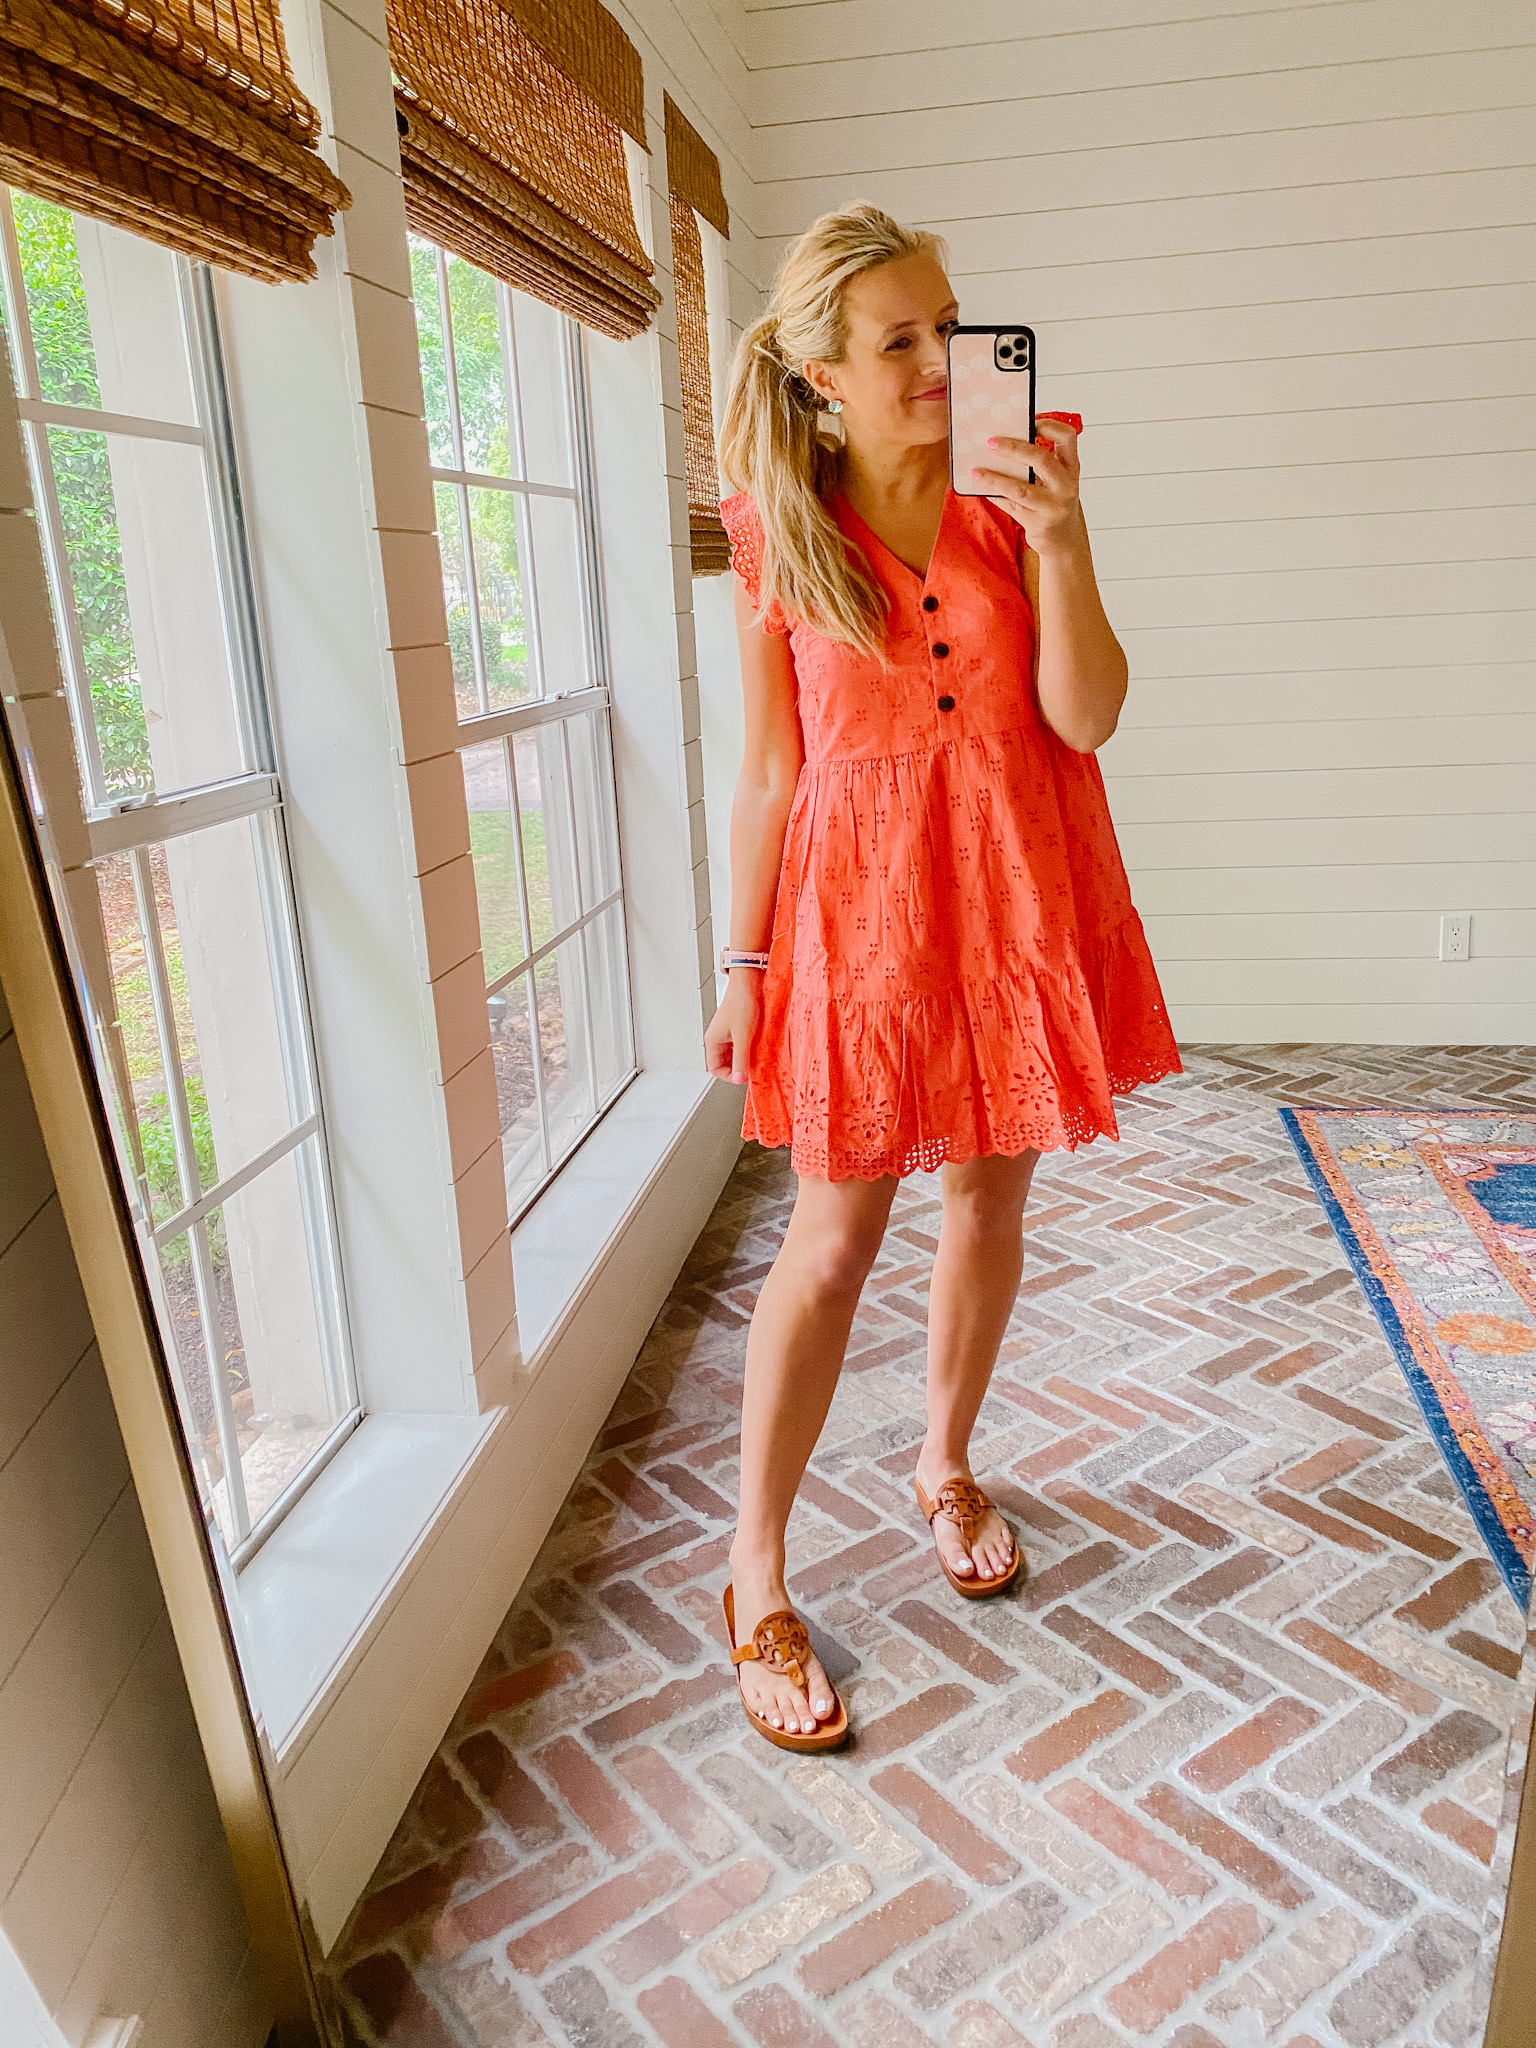 Loft Clothing by popular Houston fashion blog, The House of Fancy: image of a woman wearing a red Loft eyelet dress with brown Tory Burch slide sandals.